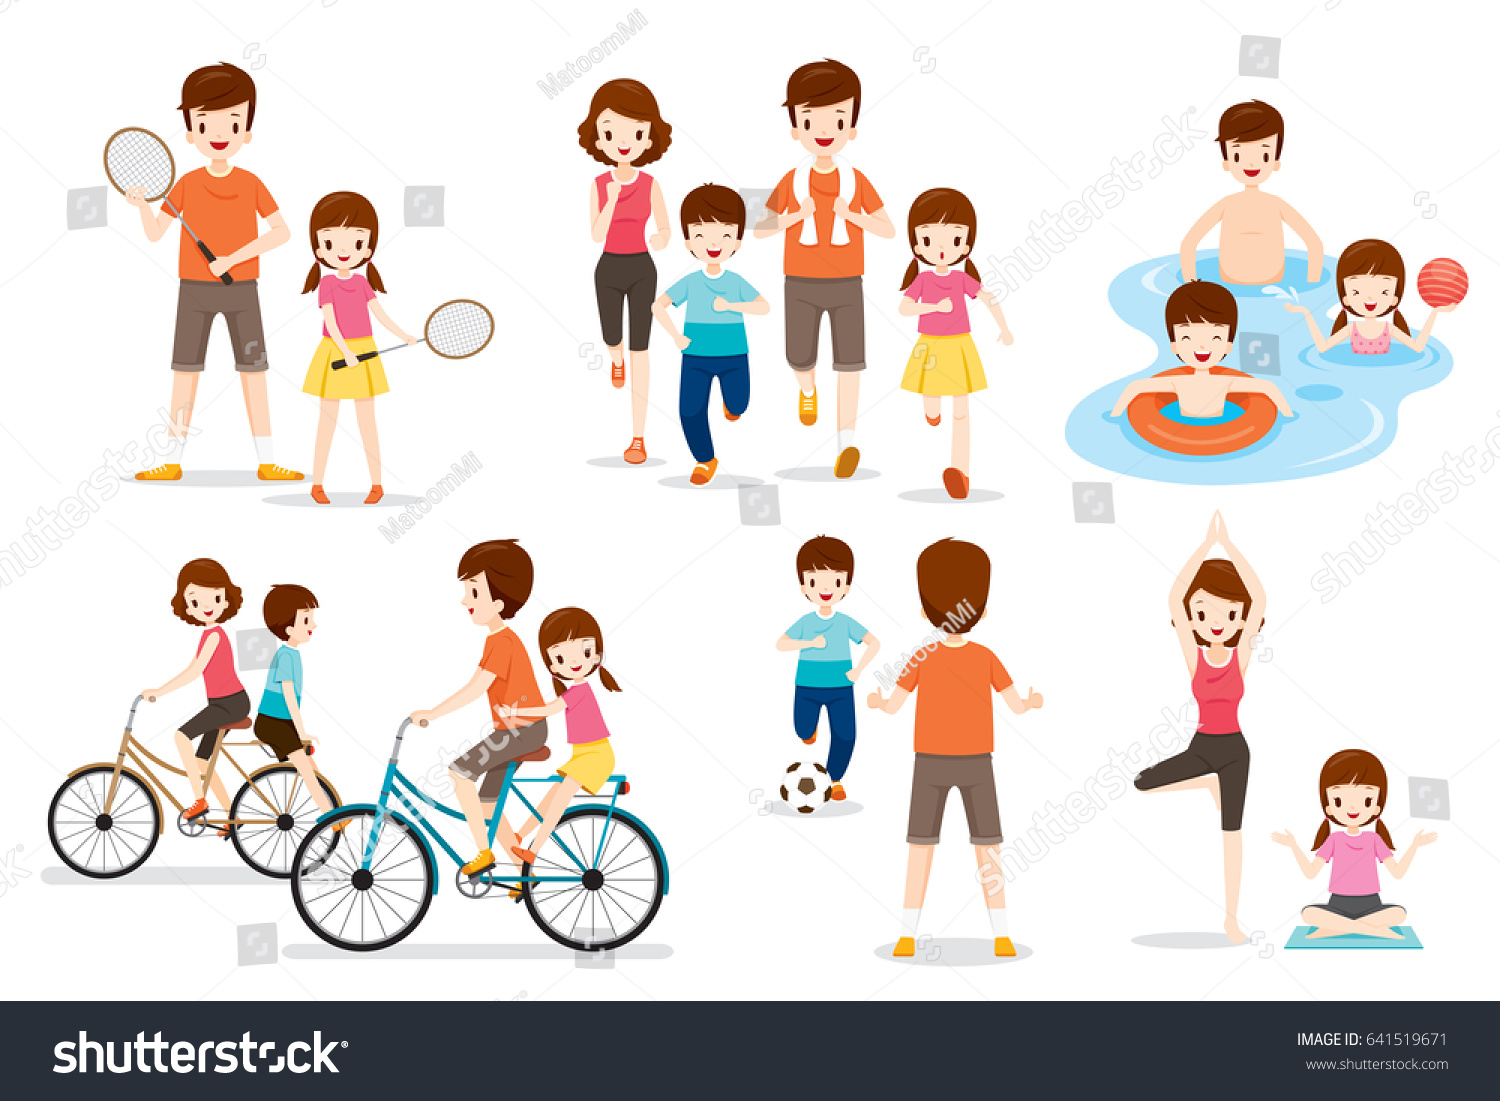 set family various exercise sports activities stock vector 641519671 shutterstock. Black Bedroom Furniture Sets. Home Design Ideas